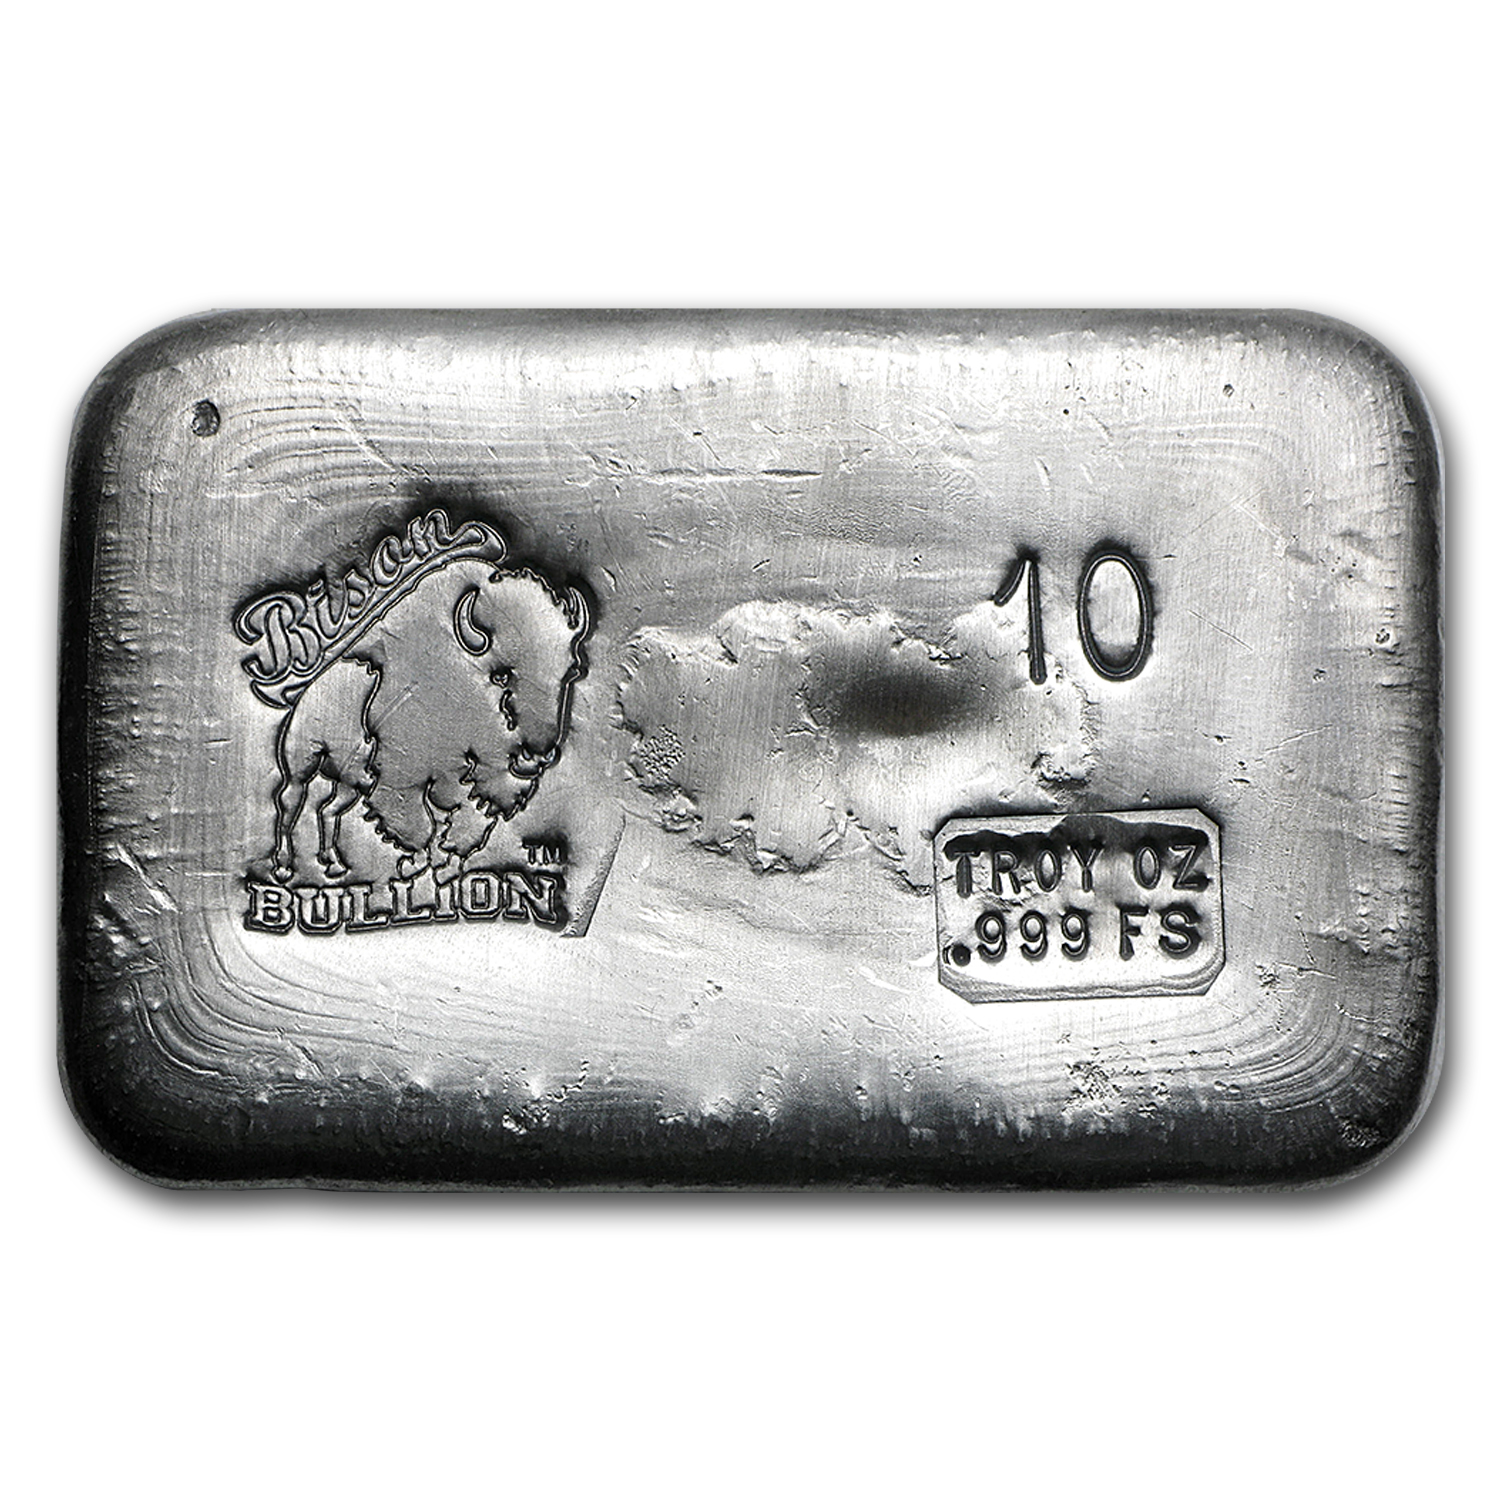 10 oz Silver Bar - Bison Bullion